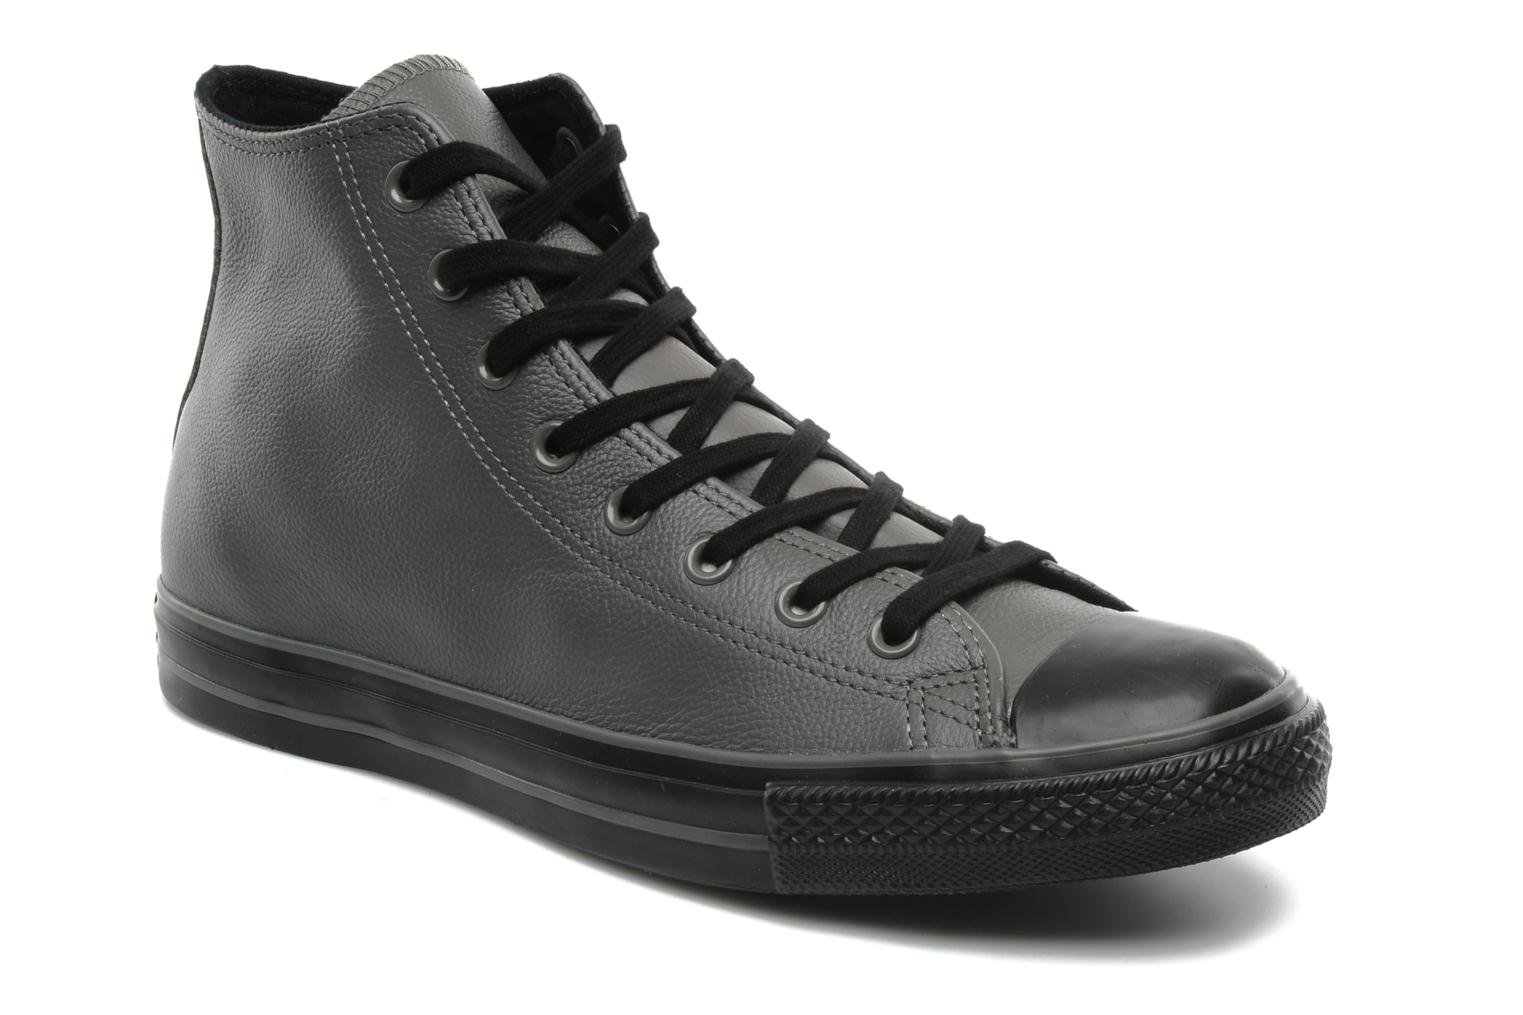 8ec0b1fc7fdb4 ... promo code for sneaker converse chuck taylor all star dark out leather  hi m grau detaillierte